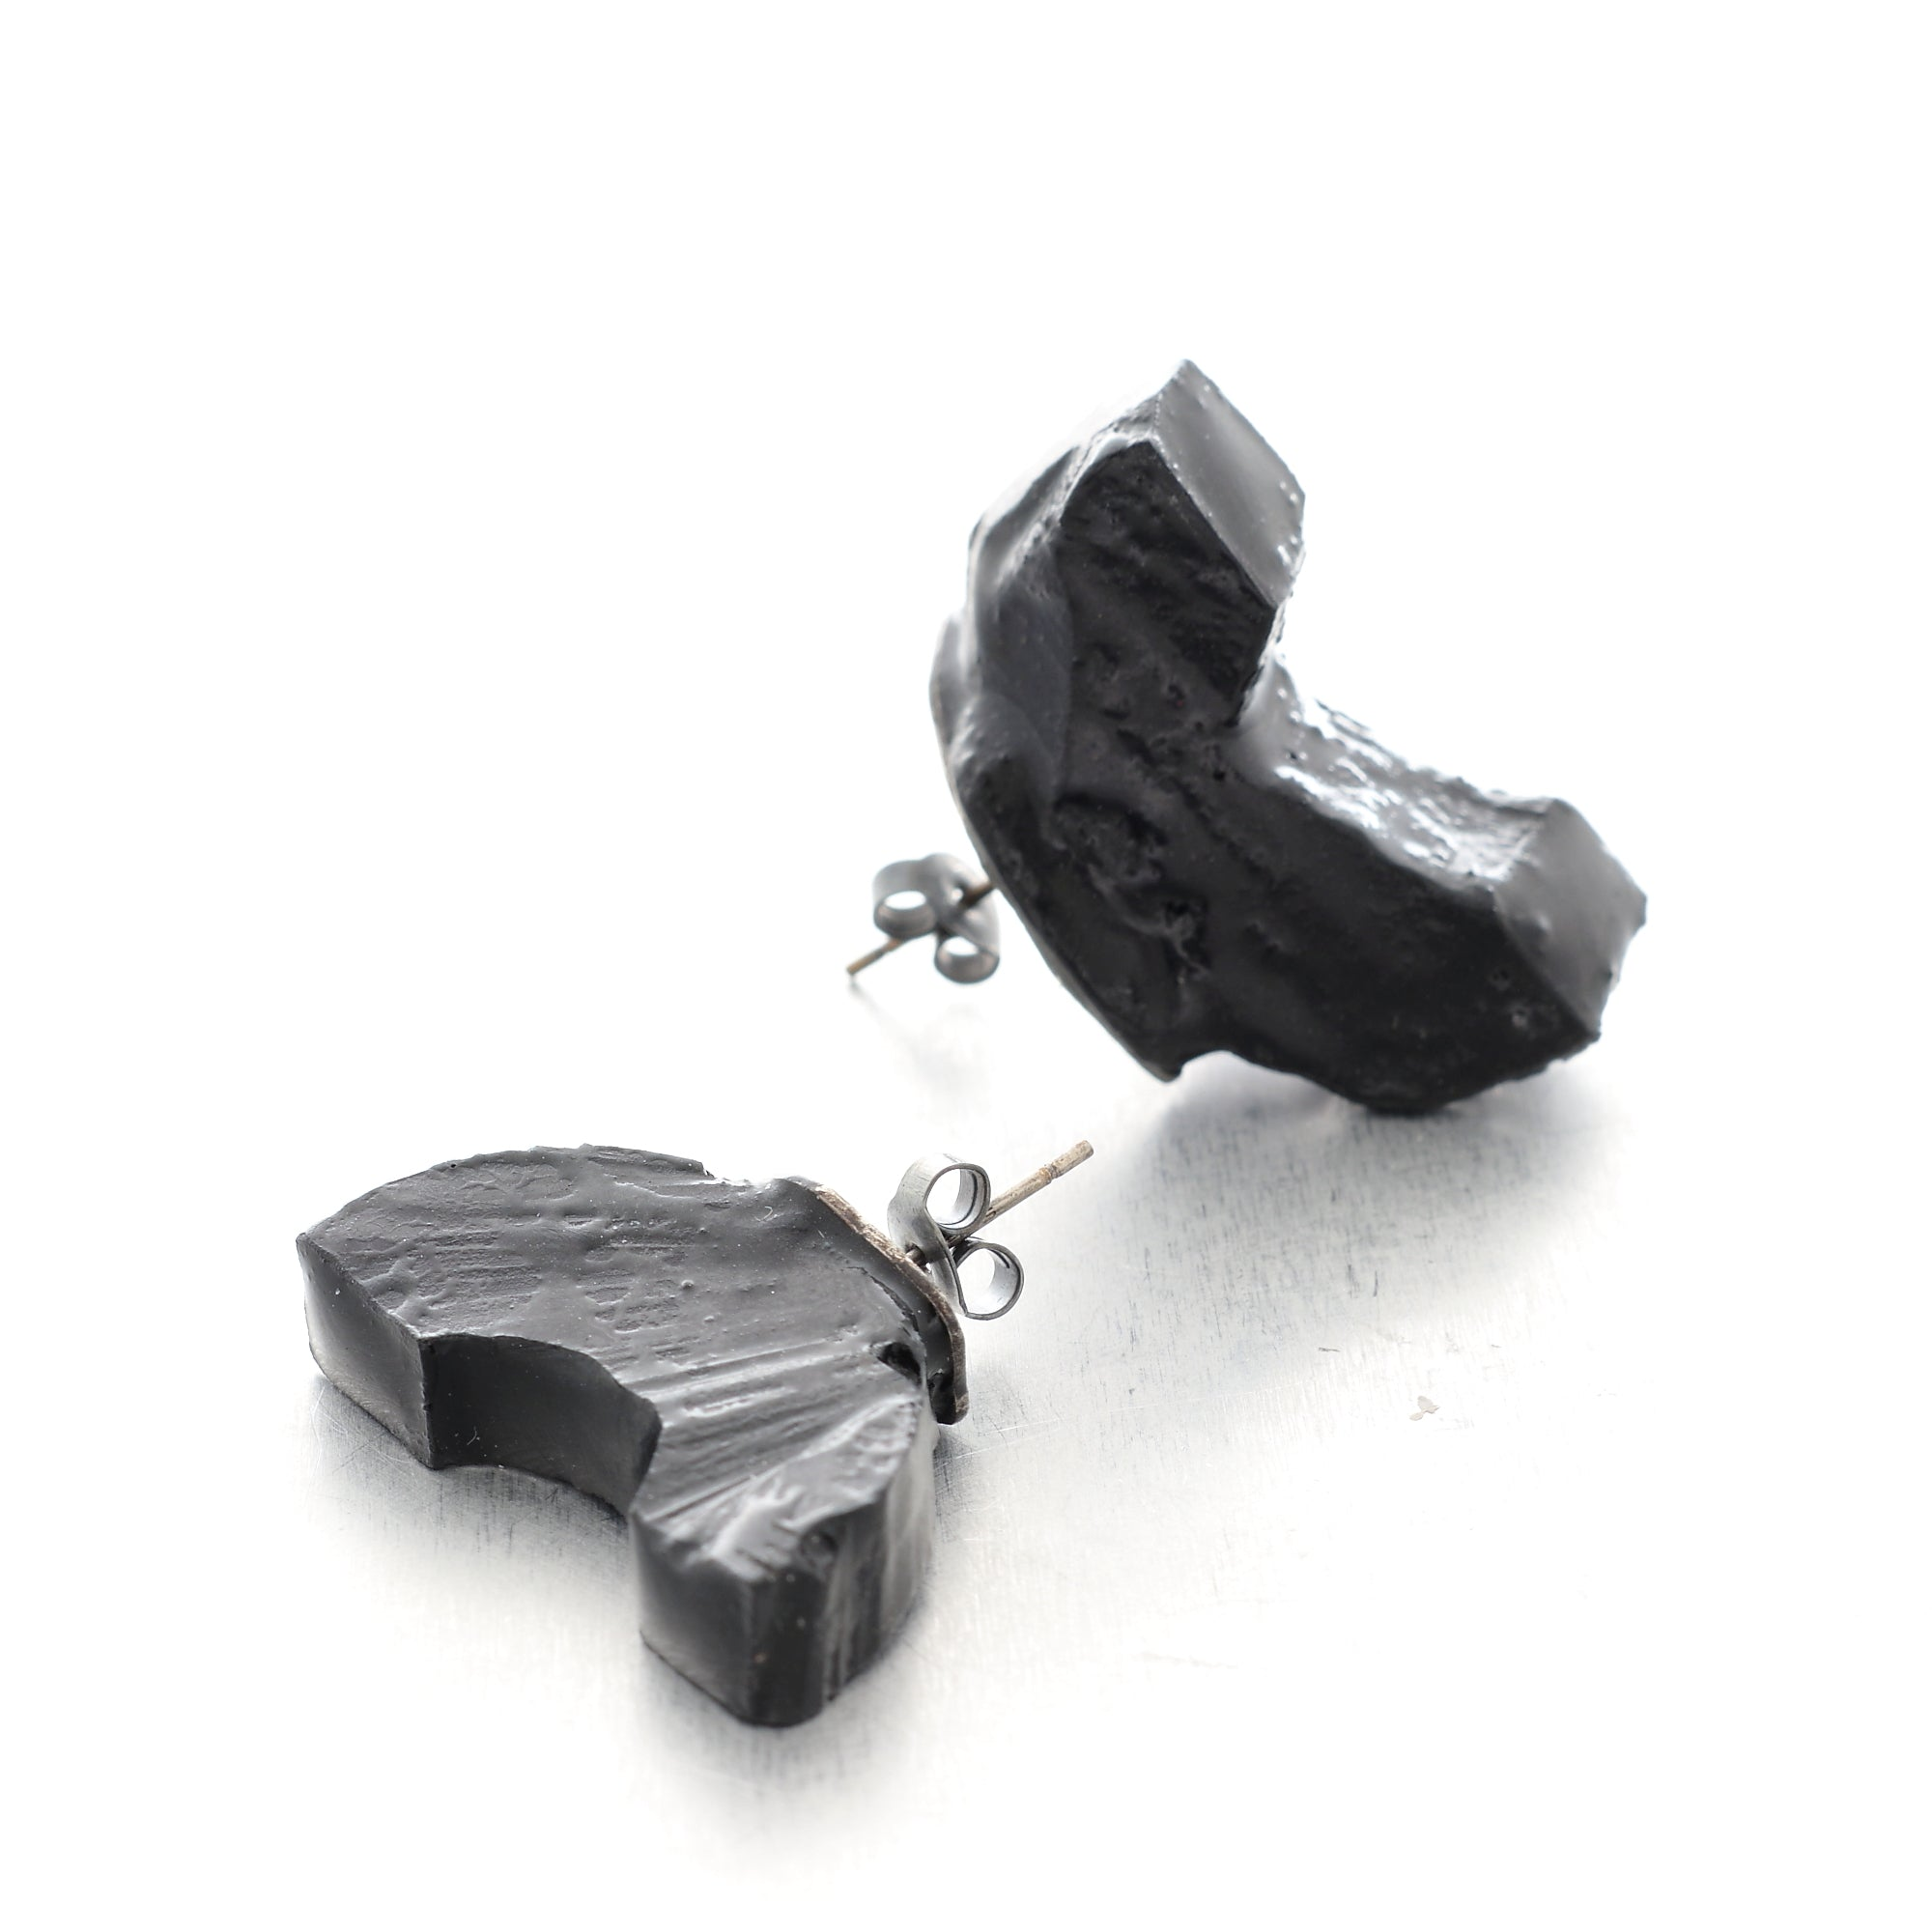 statement sculptural minimalist black jewelry earrings with epoxy resin and silver